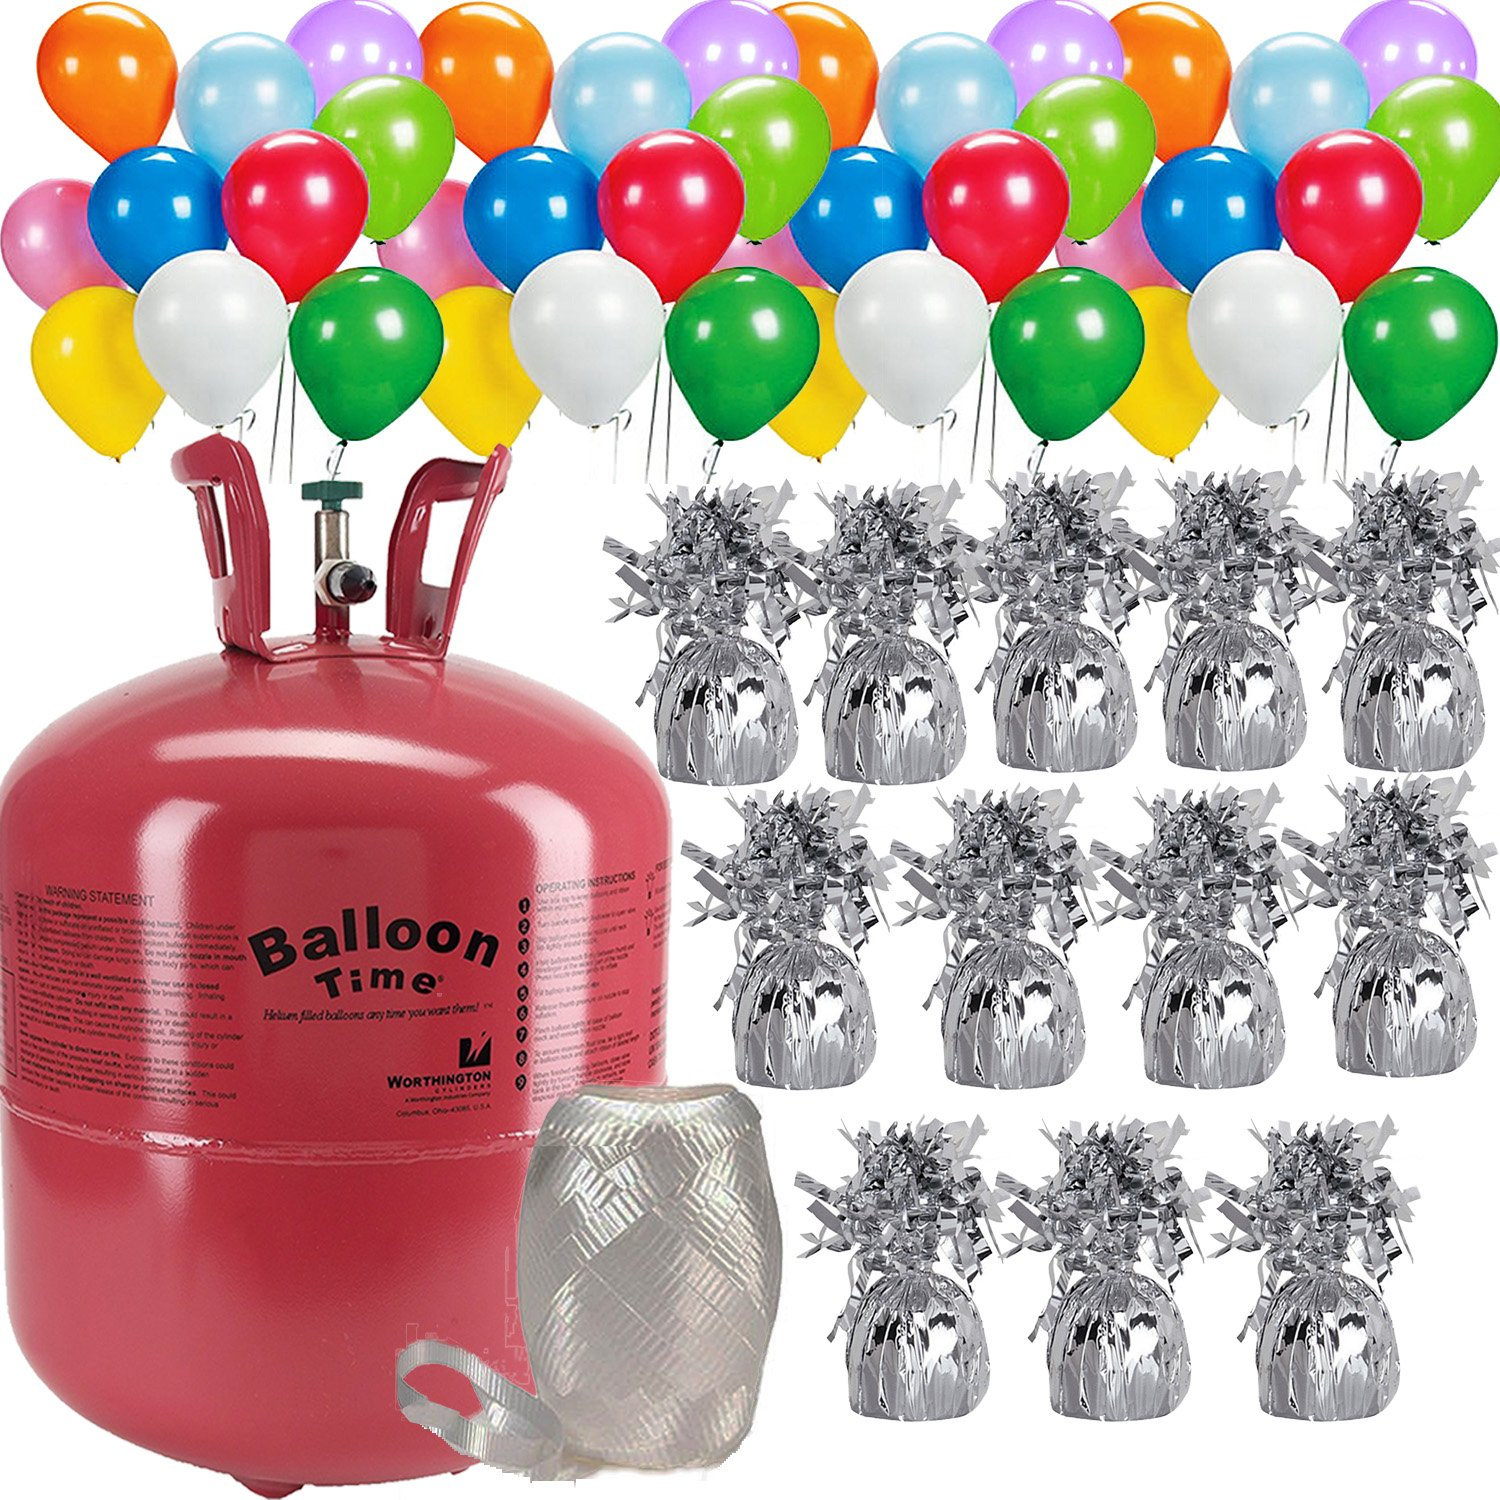 Helium Tank + 50 Multi Color balloons + 12 Balloon Weights, 5.5'', 5.7 oz + White Curling Ribbon |14.9 Cubic Feet Helium, Enough for 50 9'' Balloons